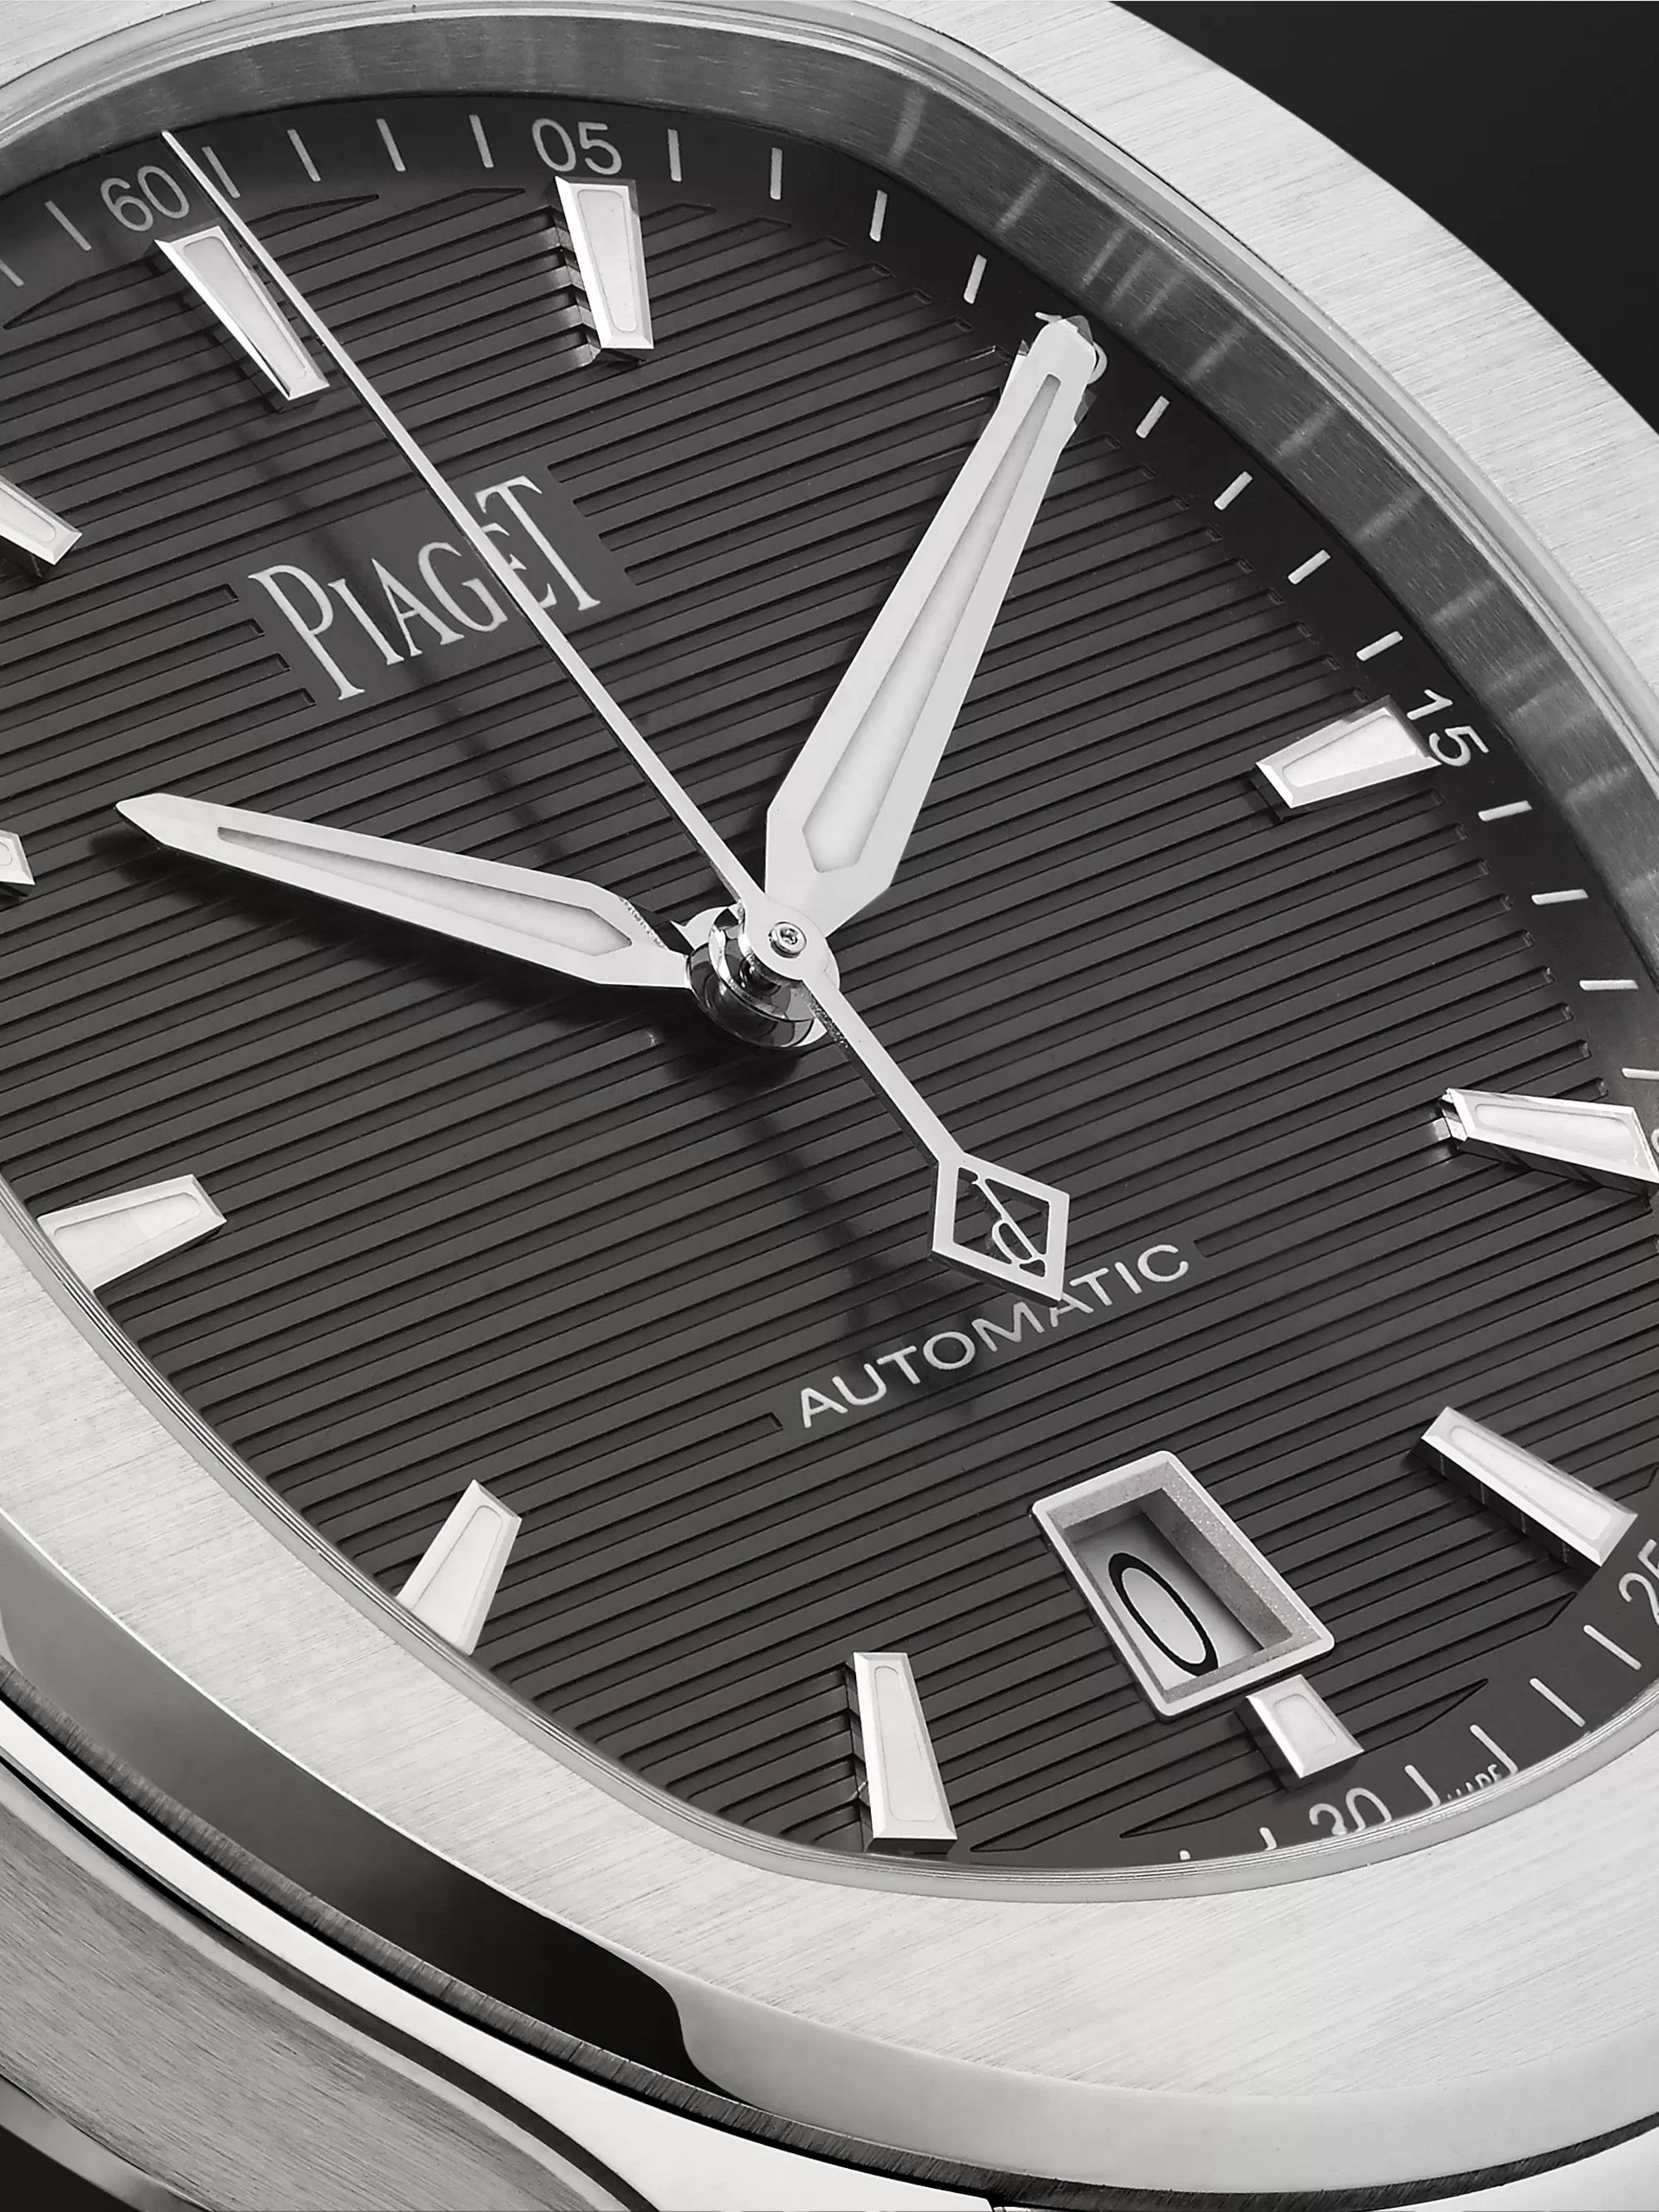 Piaget Polo S Automatic 42mm Stainless Steel Watch